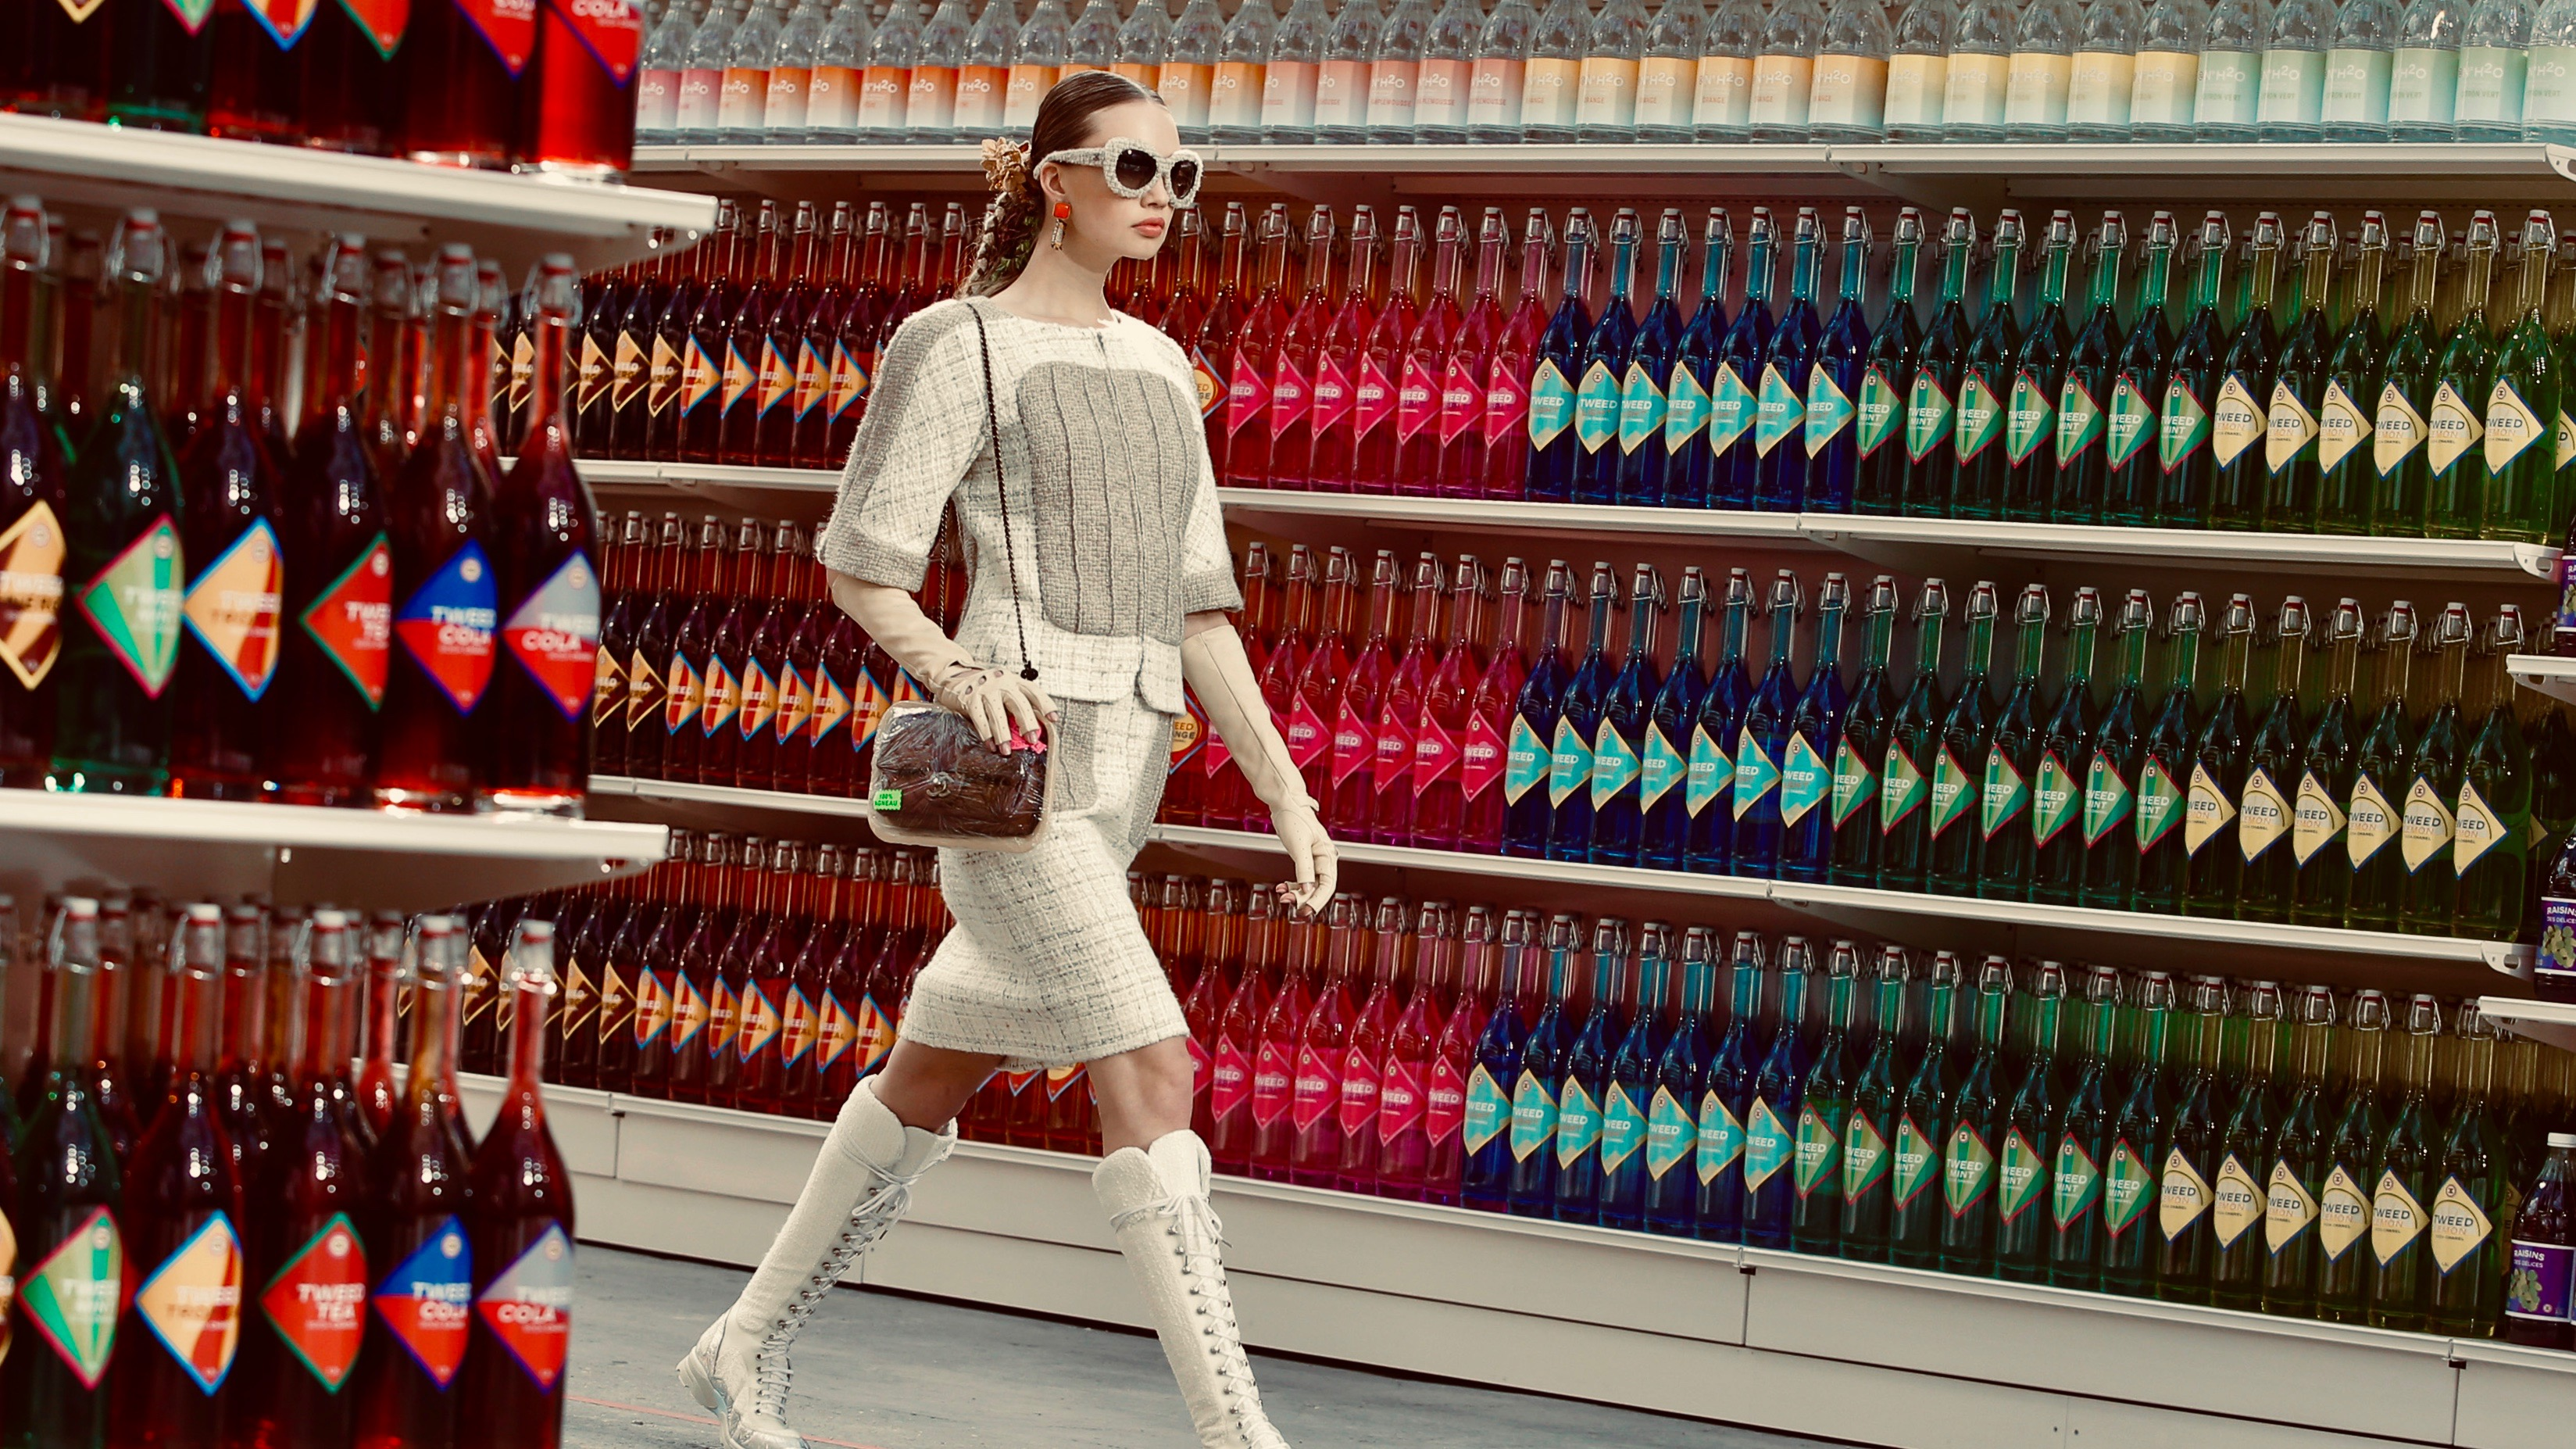 What aspirin, Chanel bags, and Coke bottles all have in common